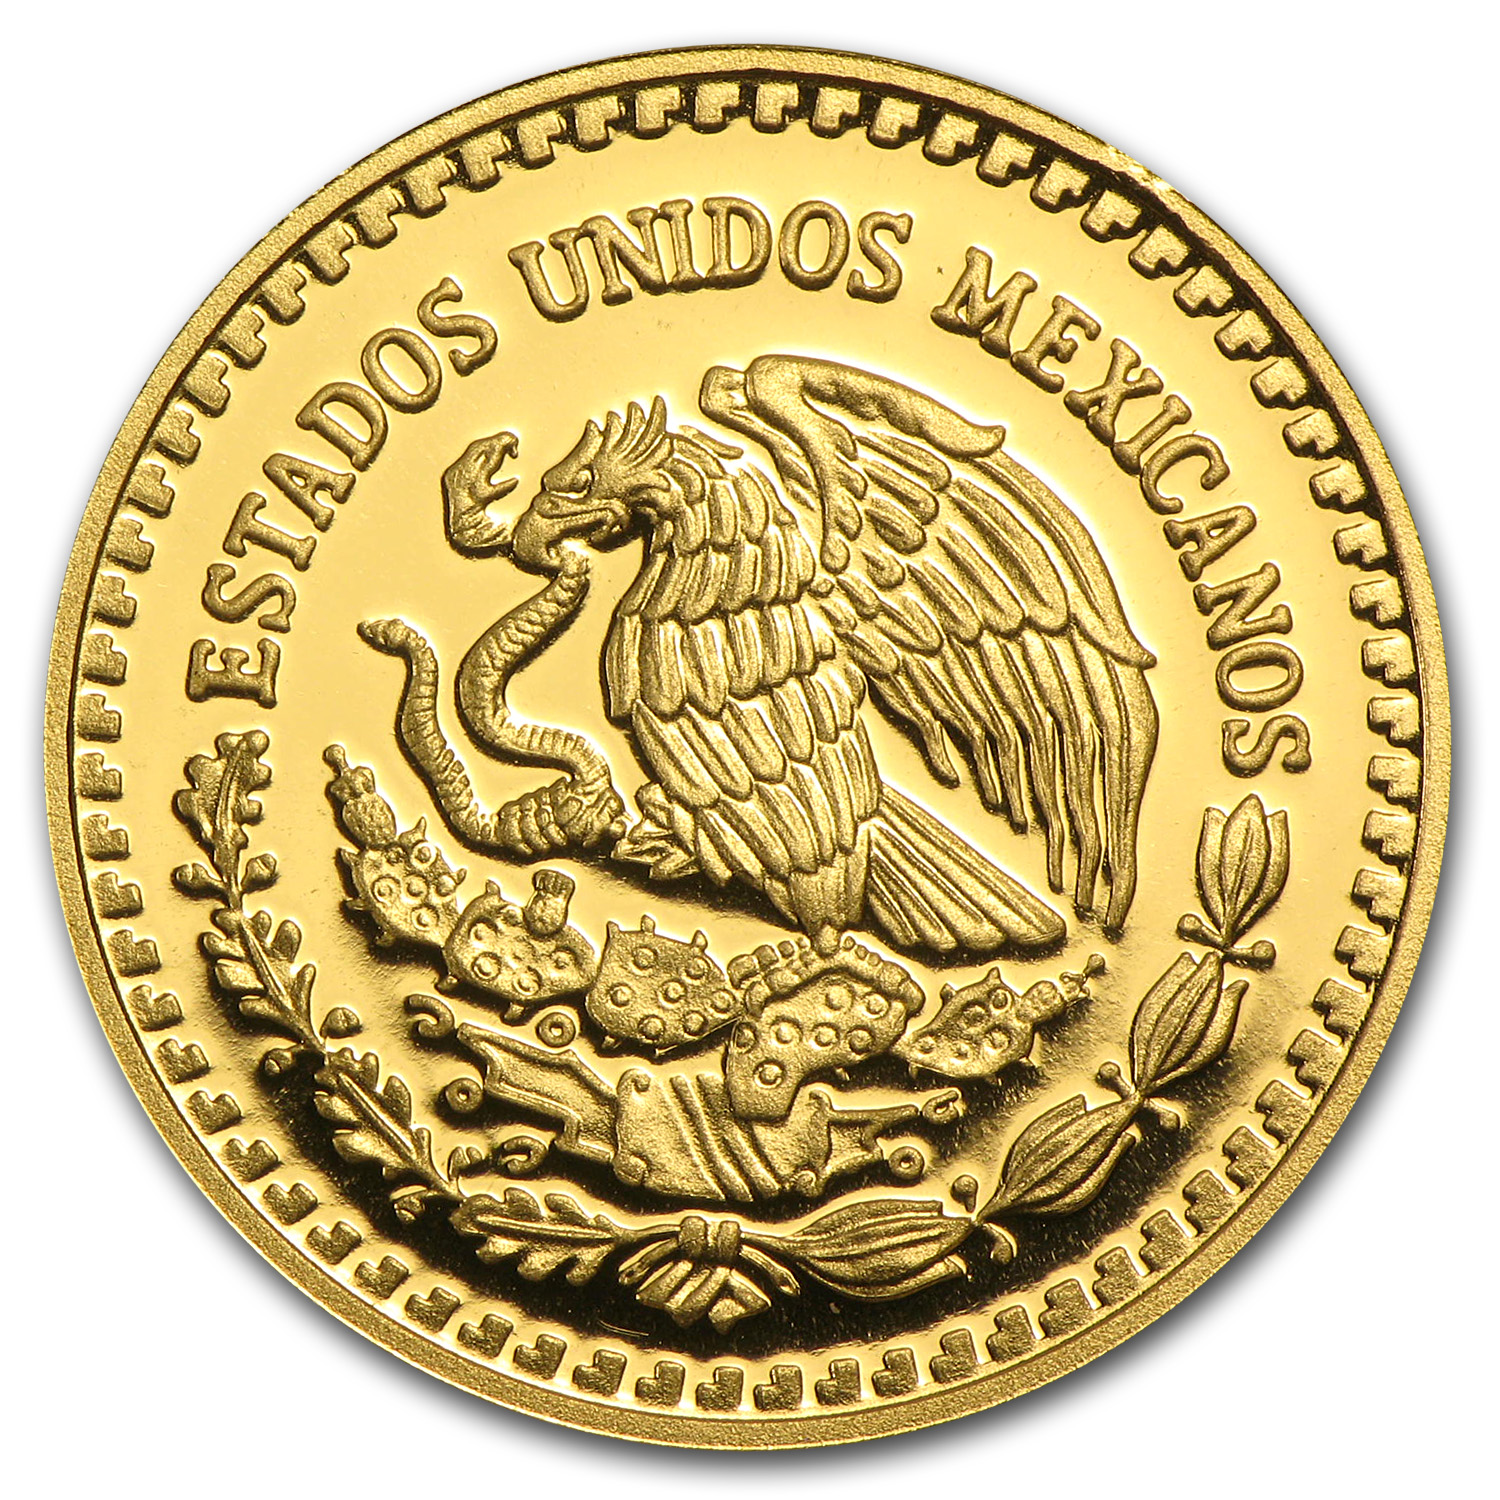 2011 Mexico 1/4 oz Proof Gold Libertad (In Capsule)